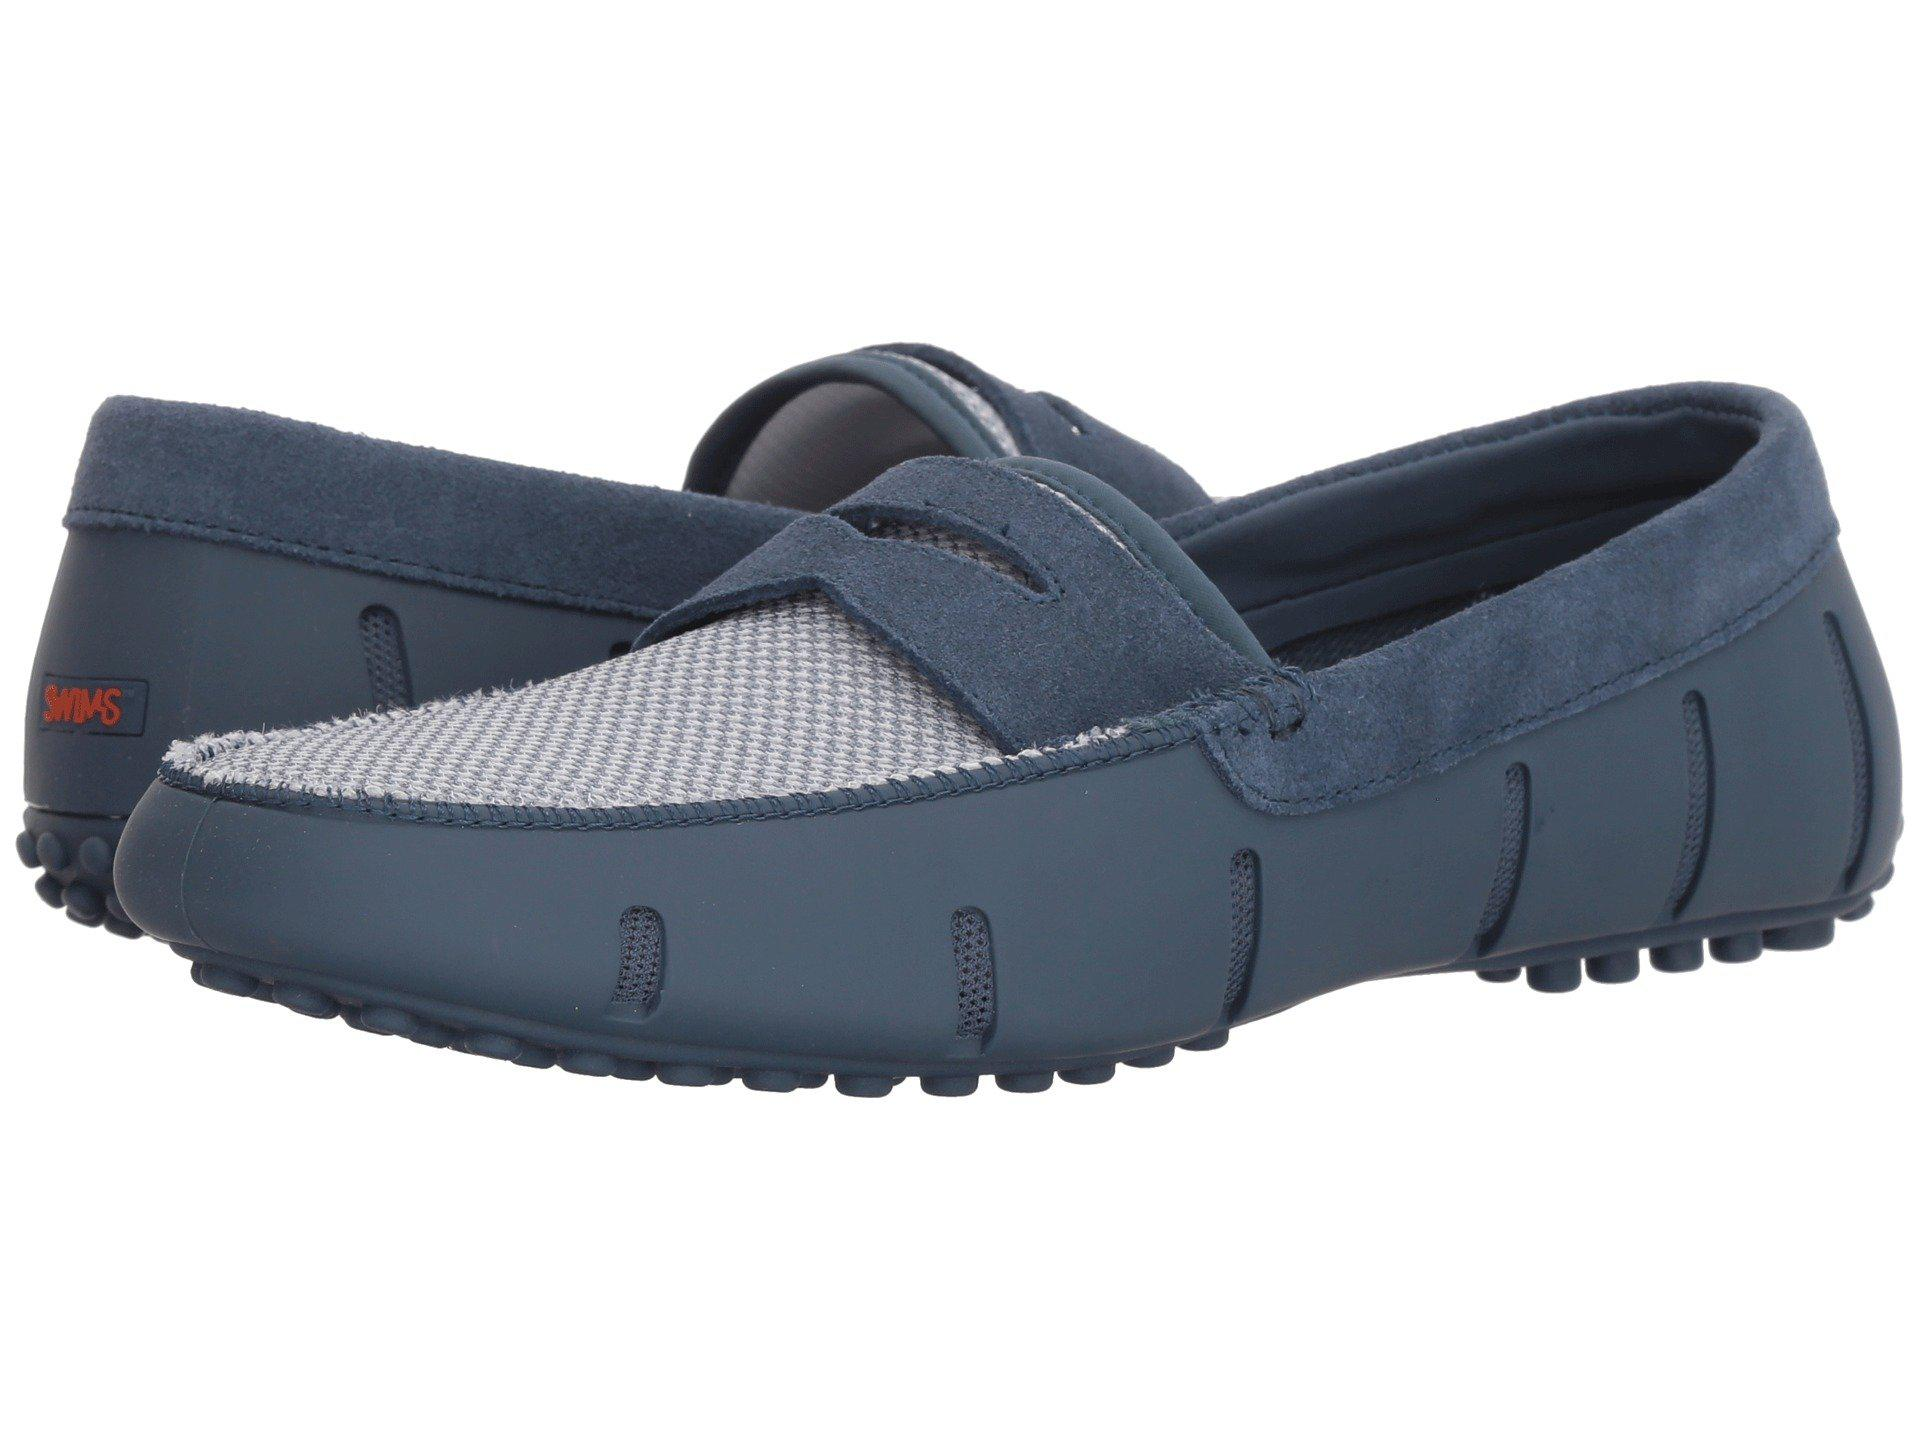 68b31685879 Lyst - Swims Penny Loafer Driver (khaki white) Men s Shoes in Blue ...